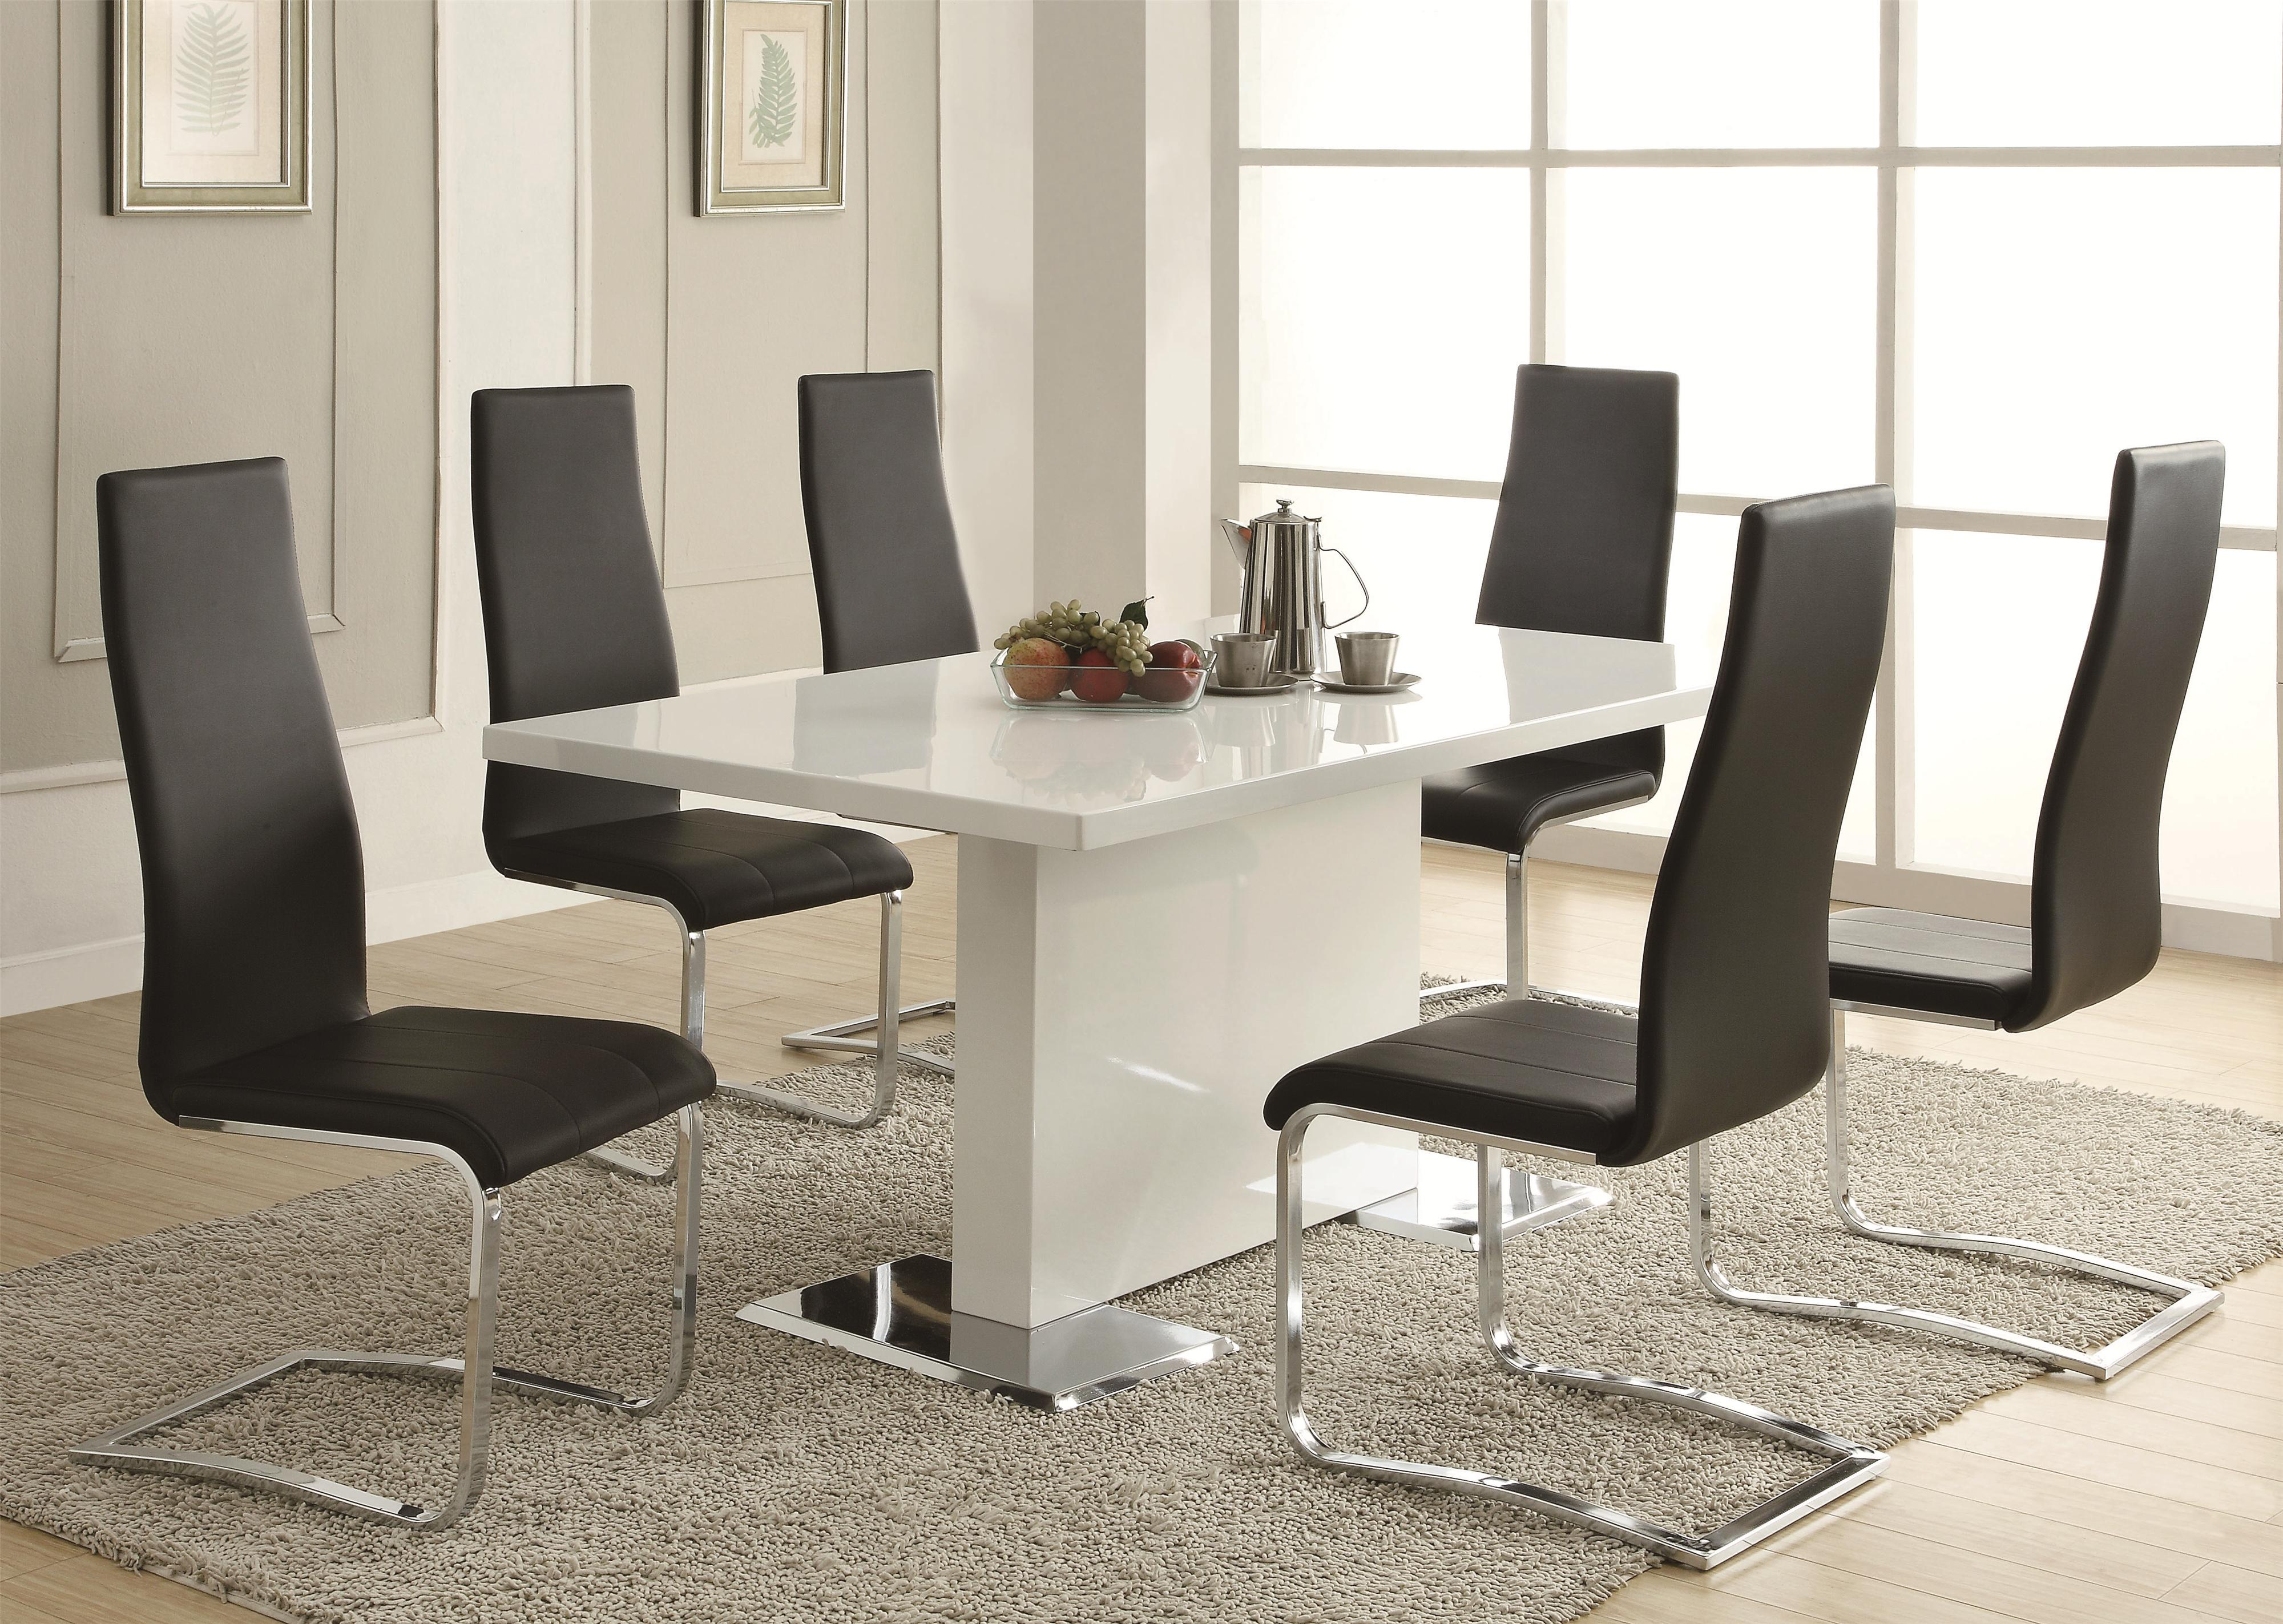 Modern Dining 7 Piece Table & Chair Set by Coaster at Northeast Factory Direct